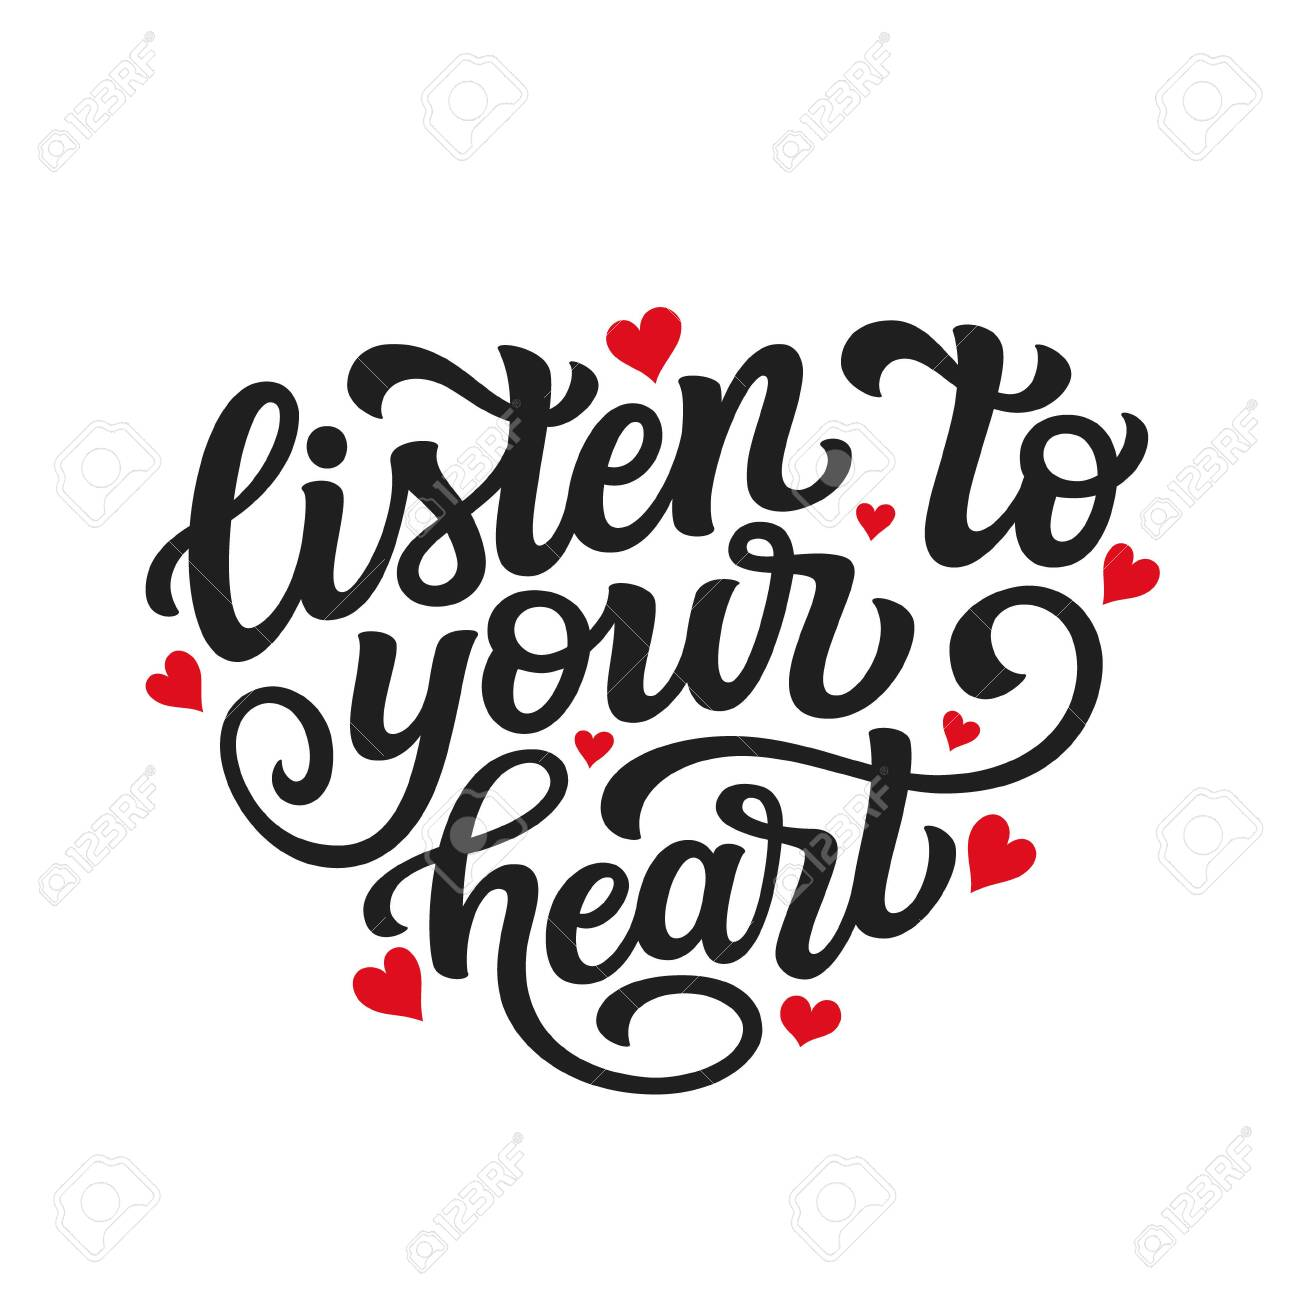 Listen to your heart. Hand drawn romantic quote isolated on white background. Vector typography for Valentine day, wedding decor, cards, posters, banners, invitations, stickers - 136747142